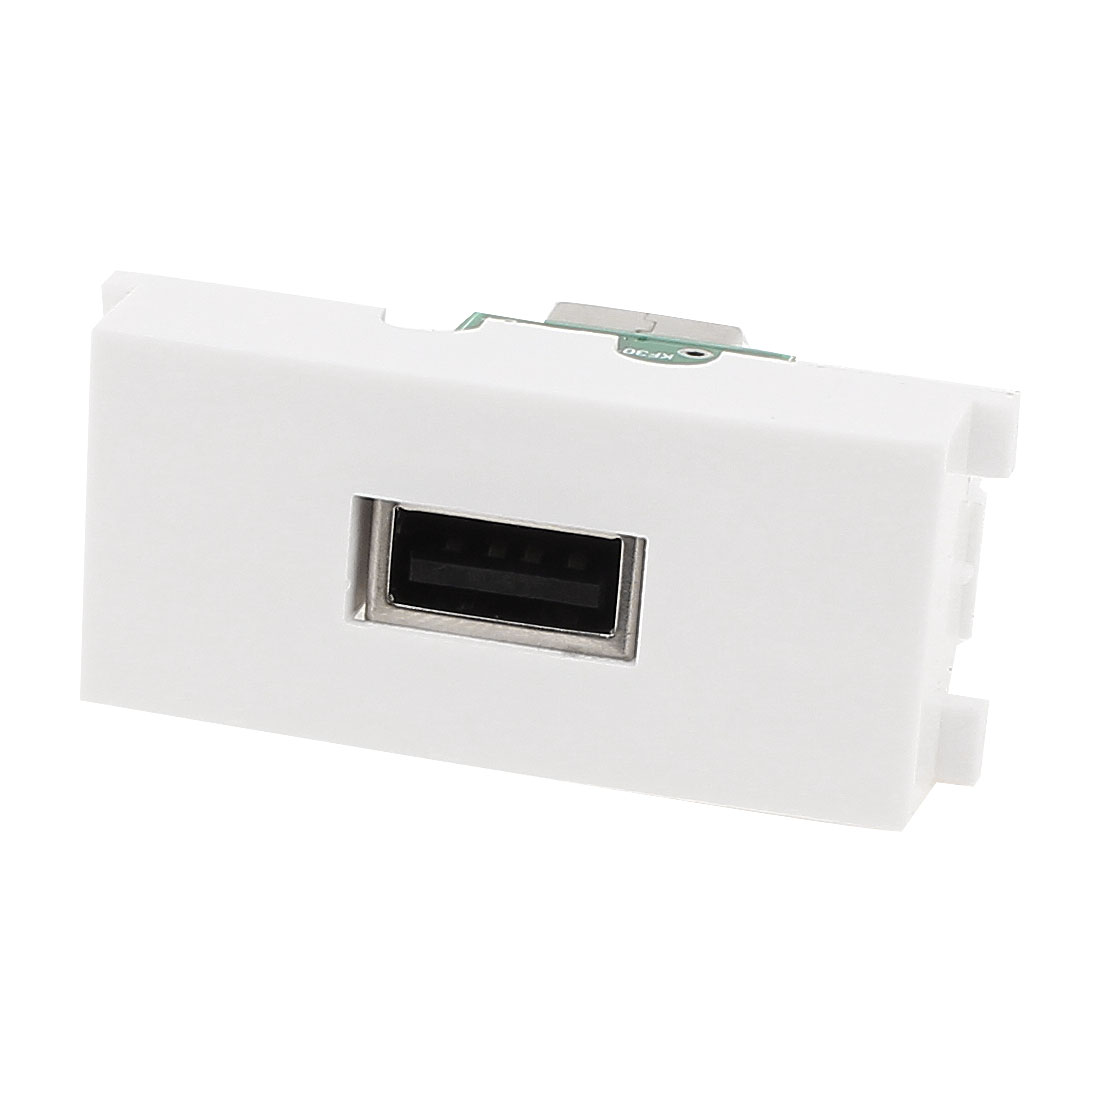 Straight USB 2.0 A Type Female to Female Module Wall Plate Socket Adapter White